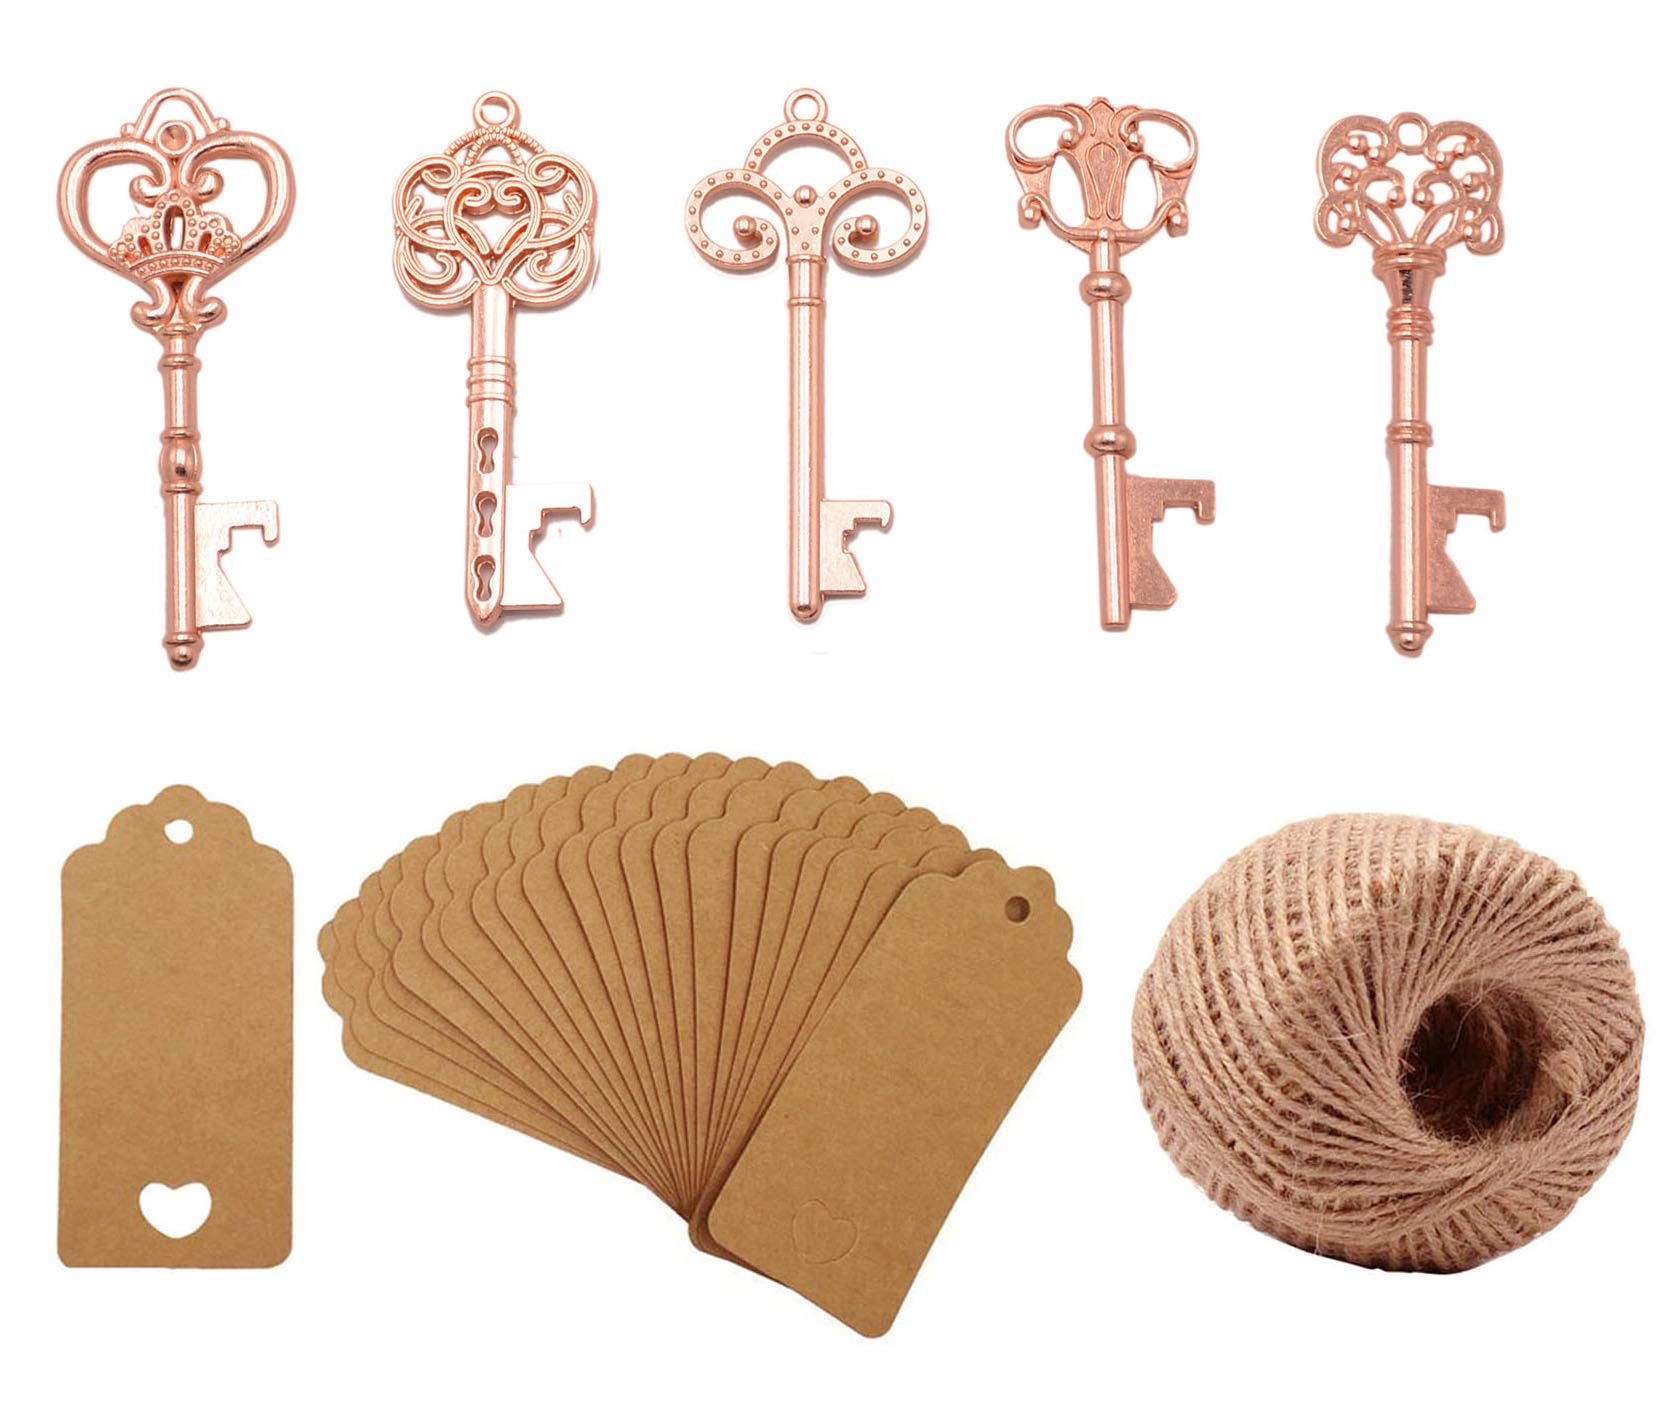 Yansanido Pack of 50 Rose Gold Skeleton Key Bottle Opener with Escort Tag Card and Twine for Wedding Favors Baby Shower Return Gifts for Guests Party Favors (mixed 5 styles Rose Gold) by Yansanido